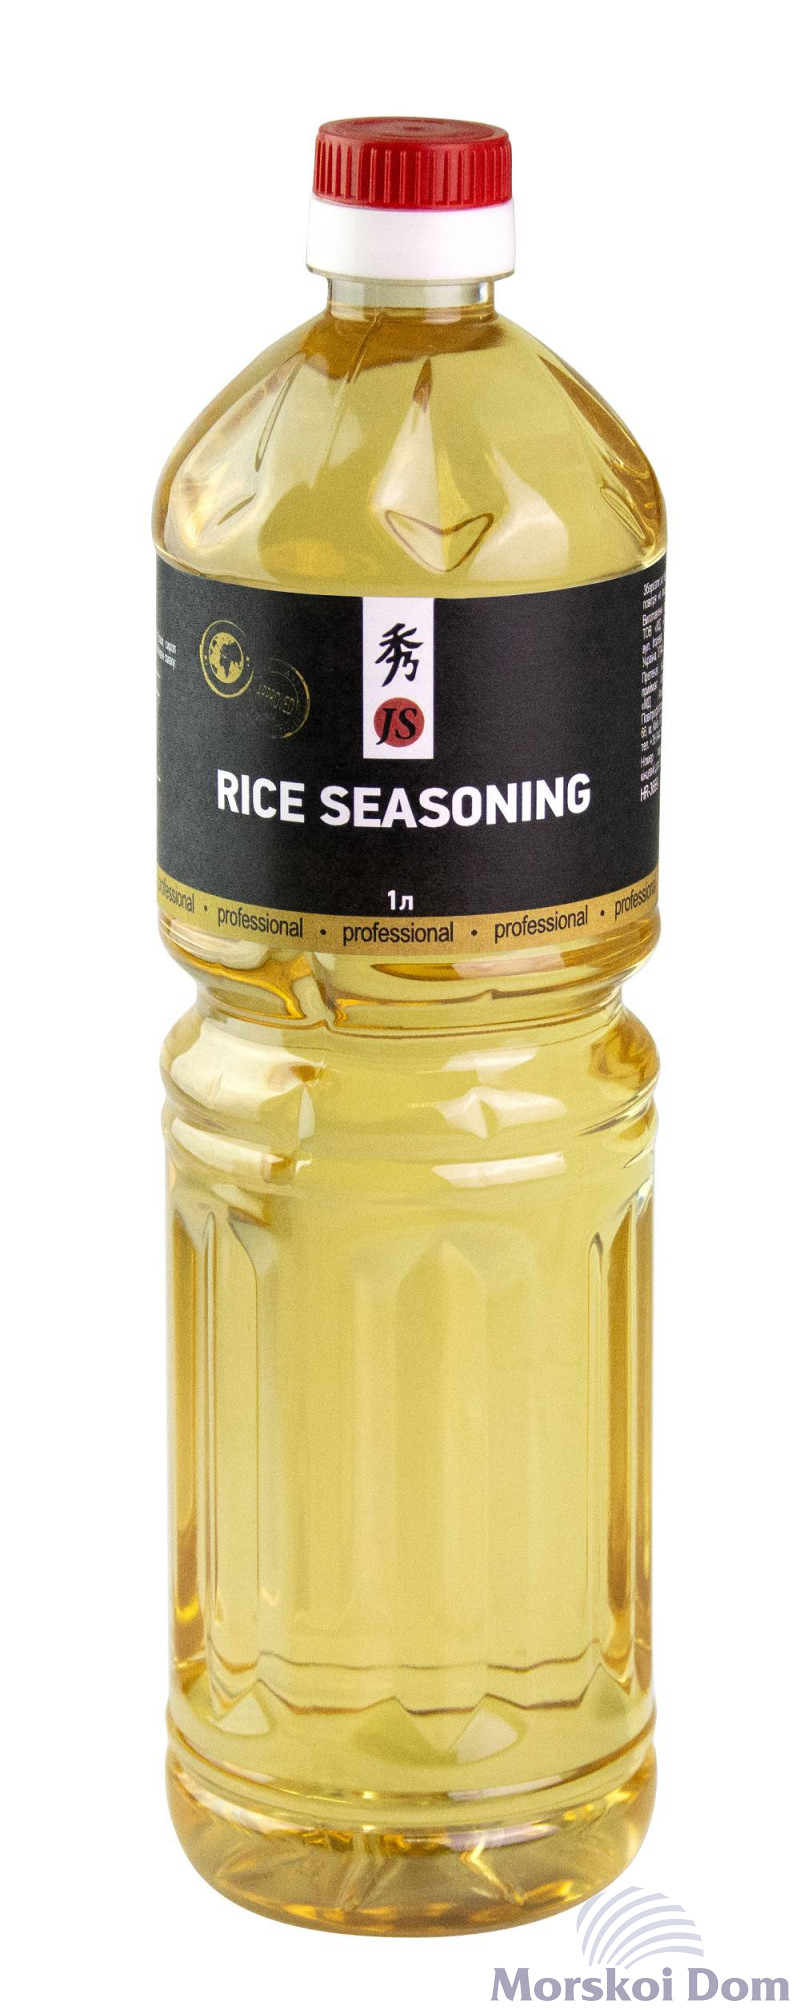 Rice seasoning rice dressing